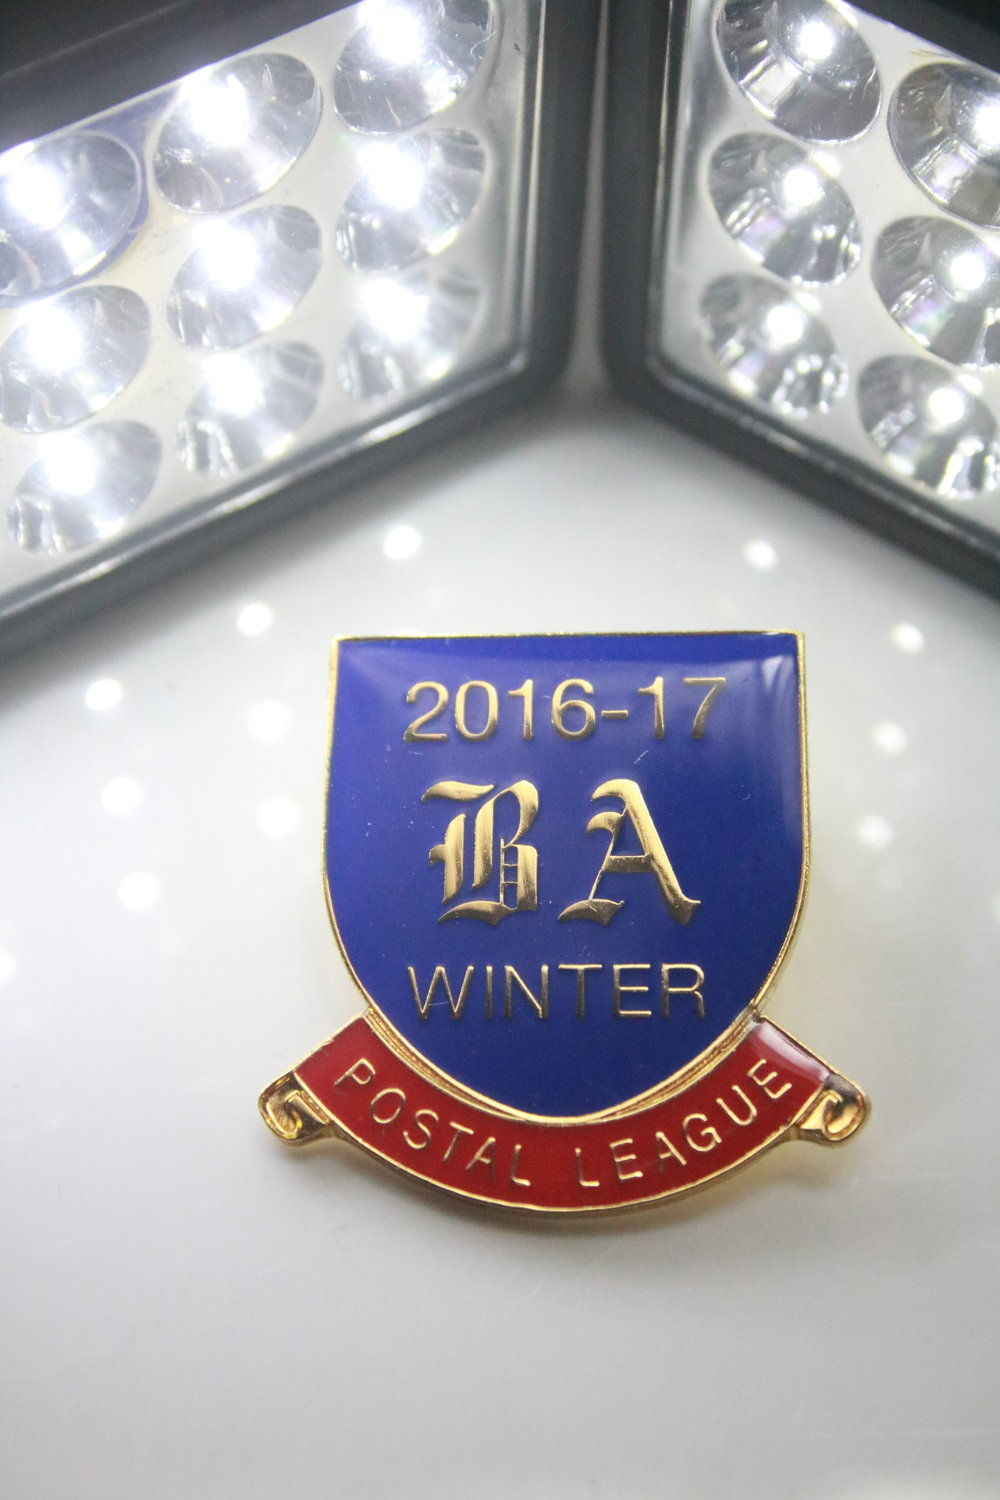 Division Winners Badge for the Outdoor Frostbite League